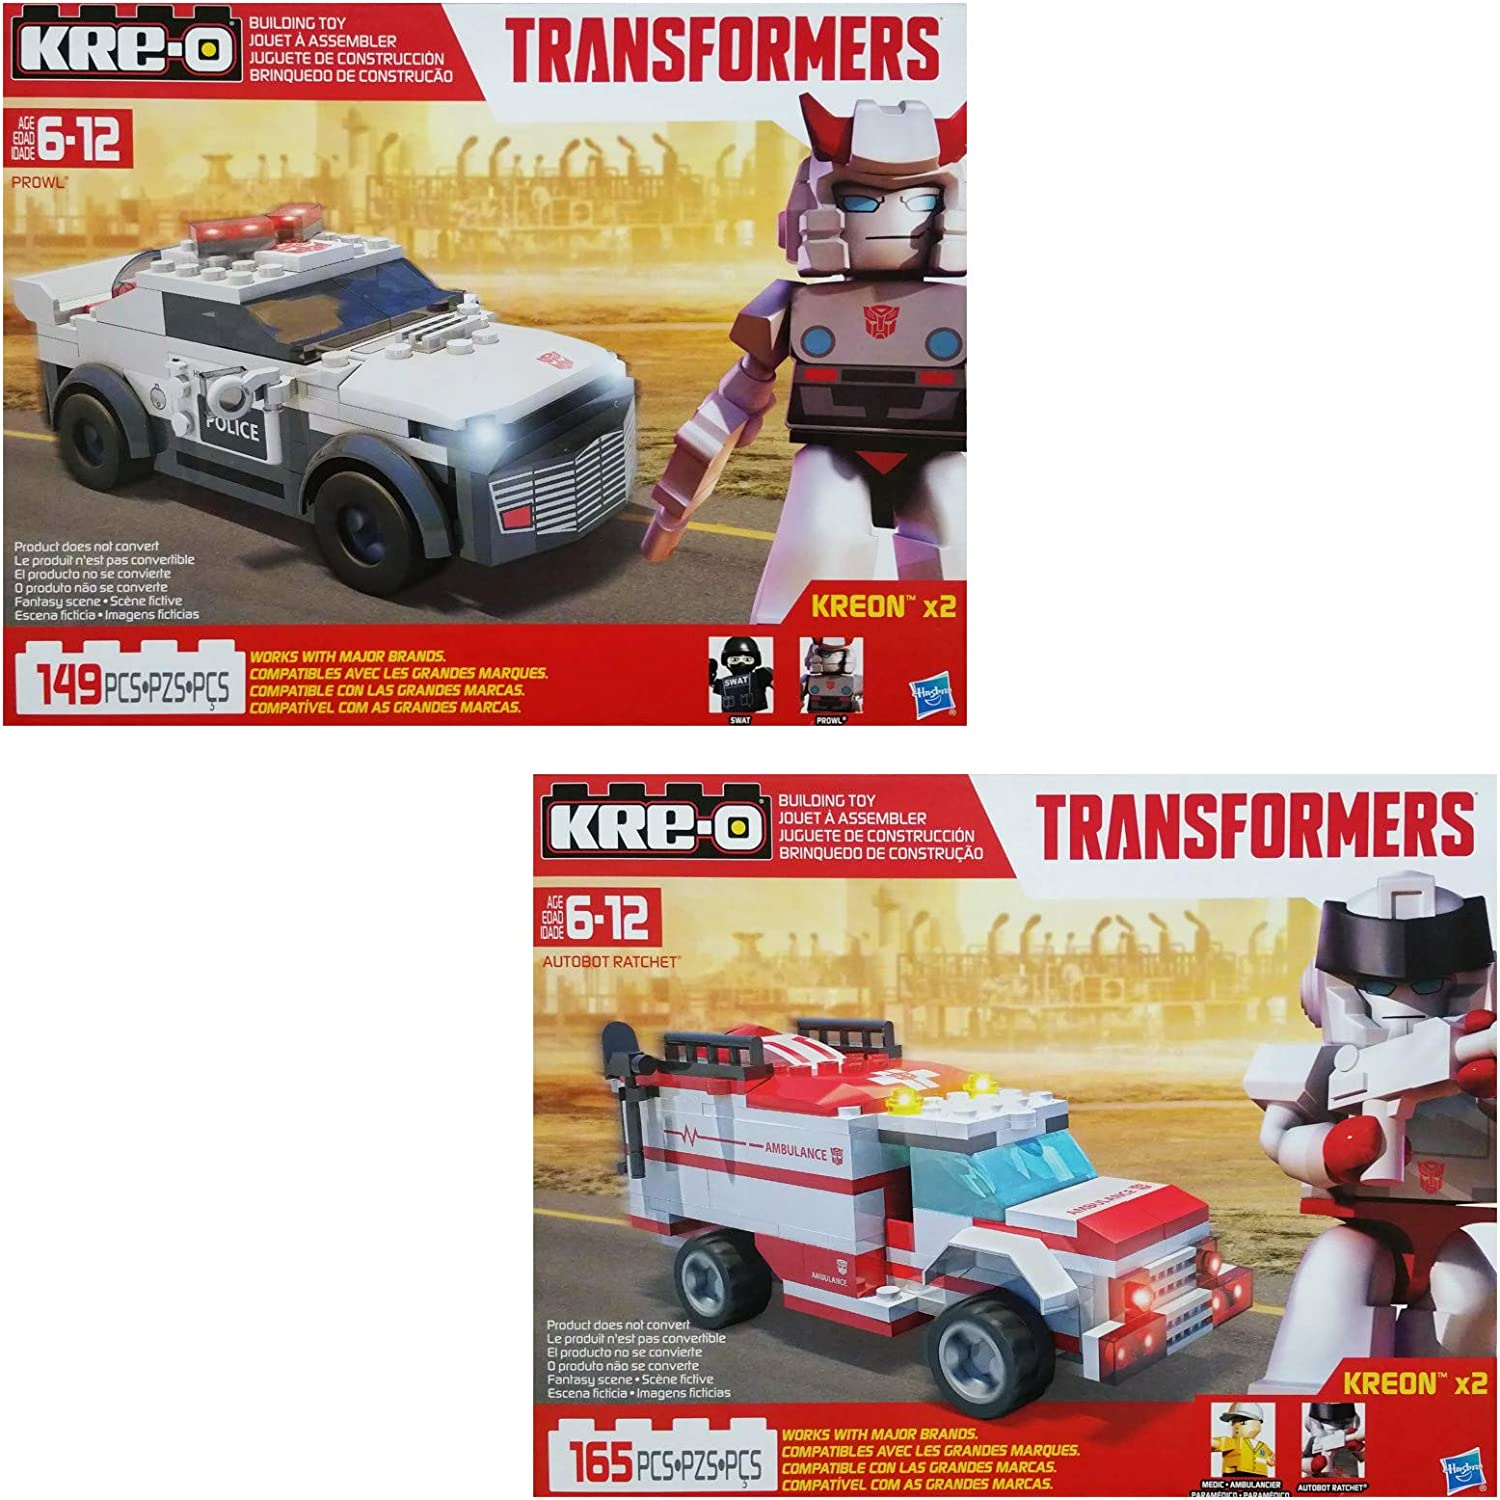 Kre-o Transformers Brick Box Micro ndern Bundle with Optimus Prime, Bumblebee, Cliffjumper, Barricade & Collection 1, 2, 3, 4& Preview Series Blind Bags (1of each)